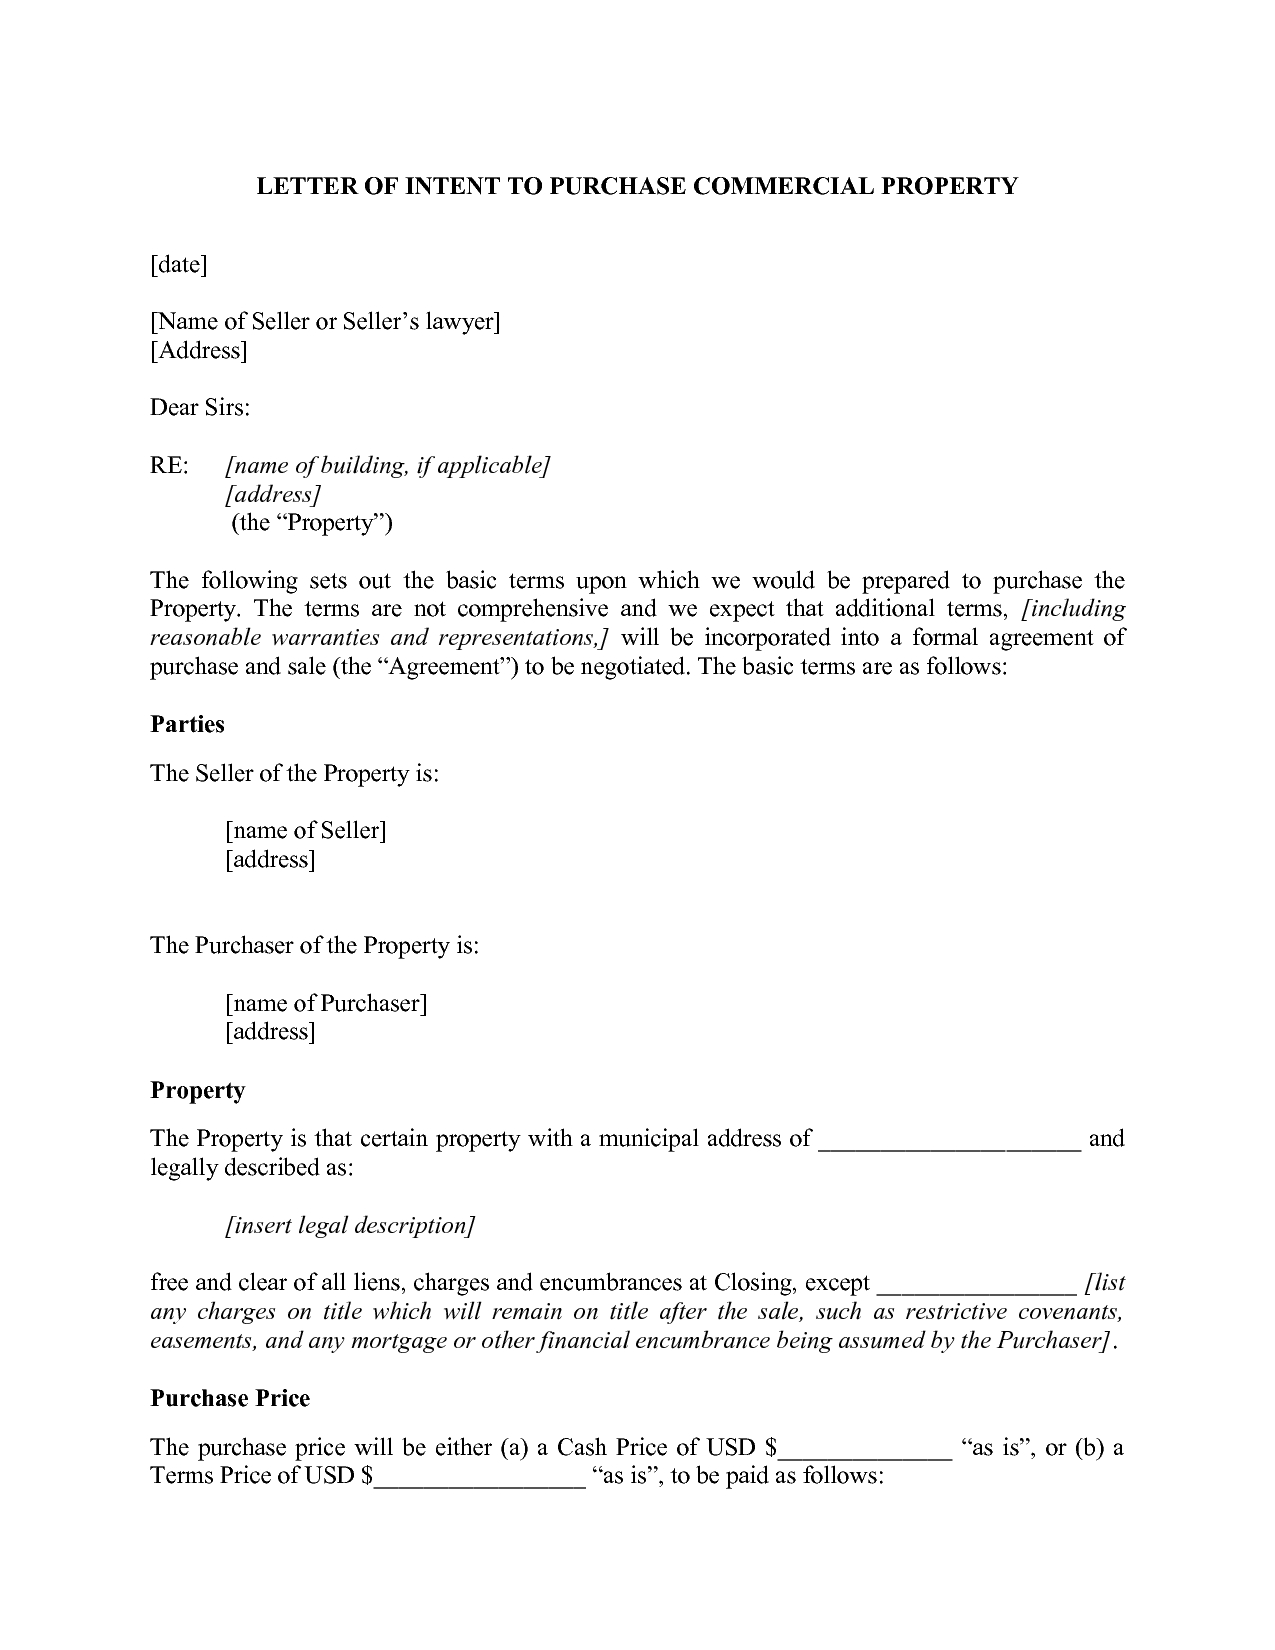 Letter Of Intent to Lease Commercial Property Template - Letter Intent Real Estate Lease Hd to Mercial Property